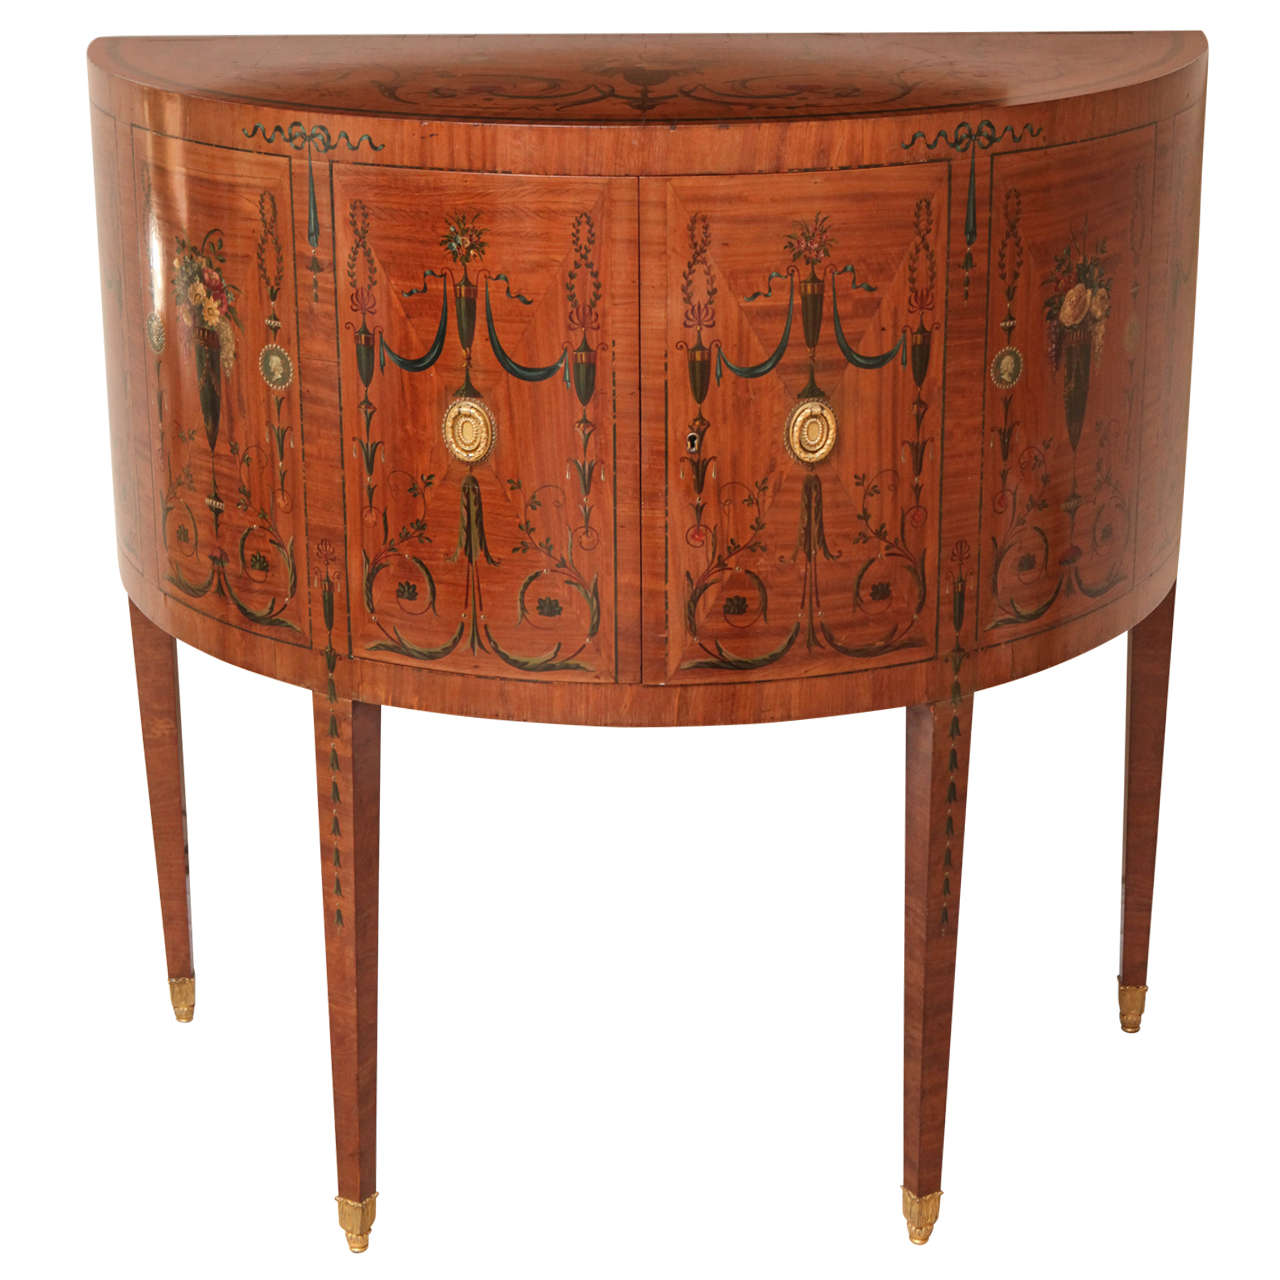 19th Century Edward Caldwell Satinwood Demilune Console Table 1